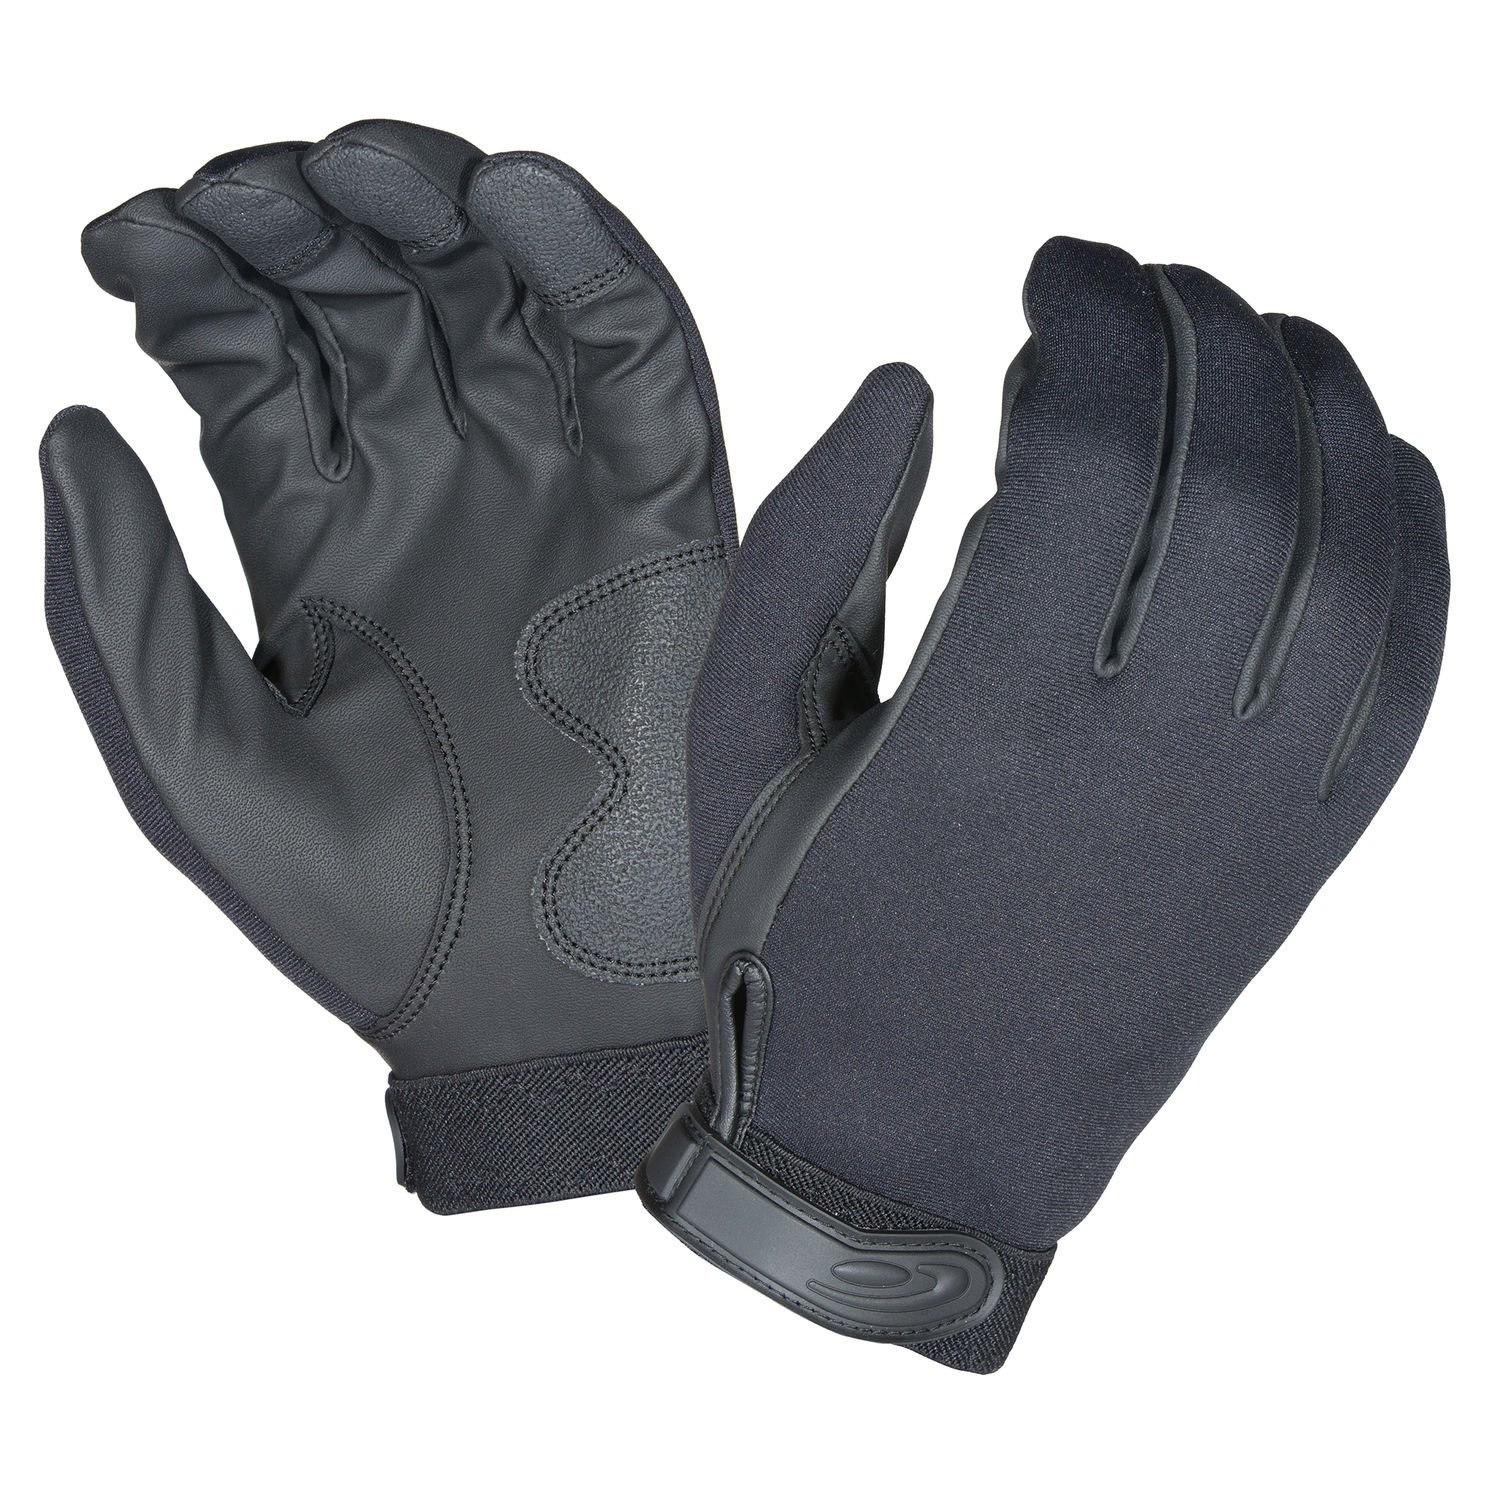 Specialist All Weather Shooting Gloves HG003 HATCH